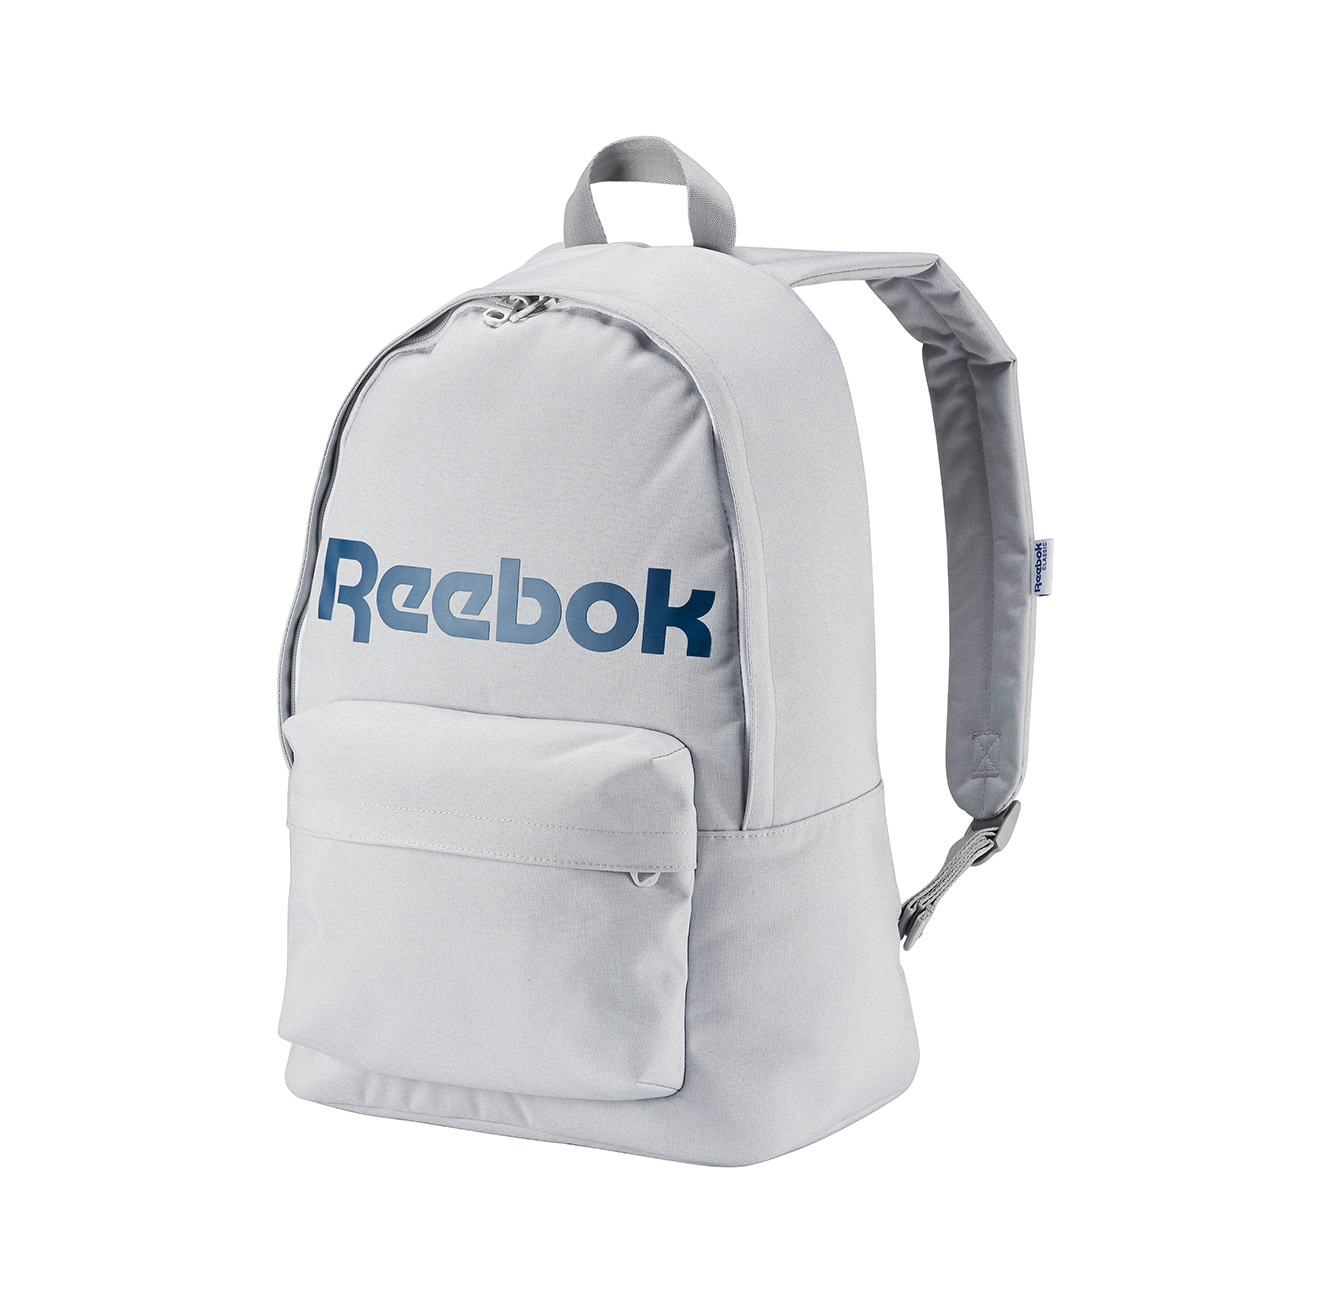 תיק ריבוק CL ROYAL BACKPACK - אפור